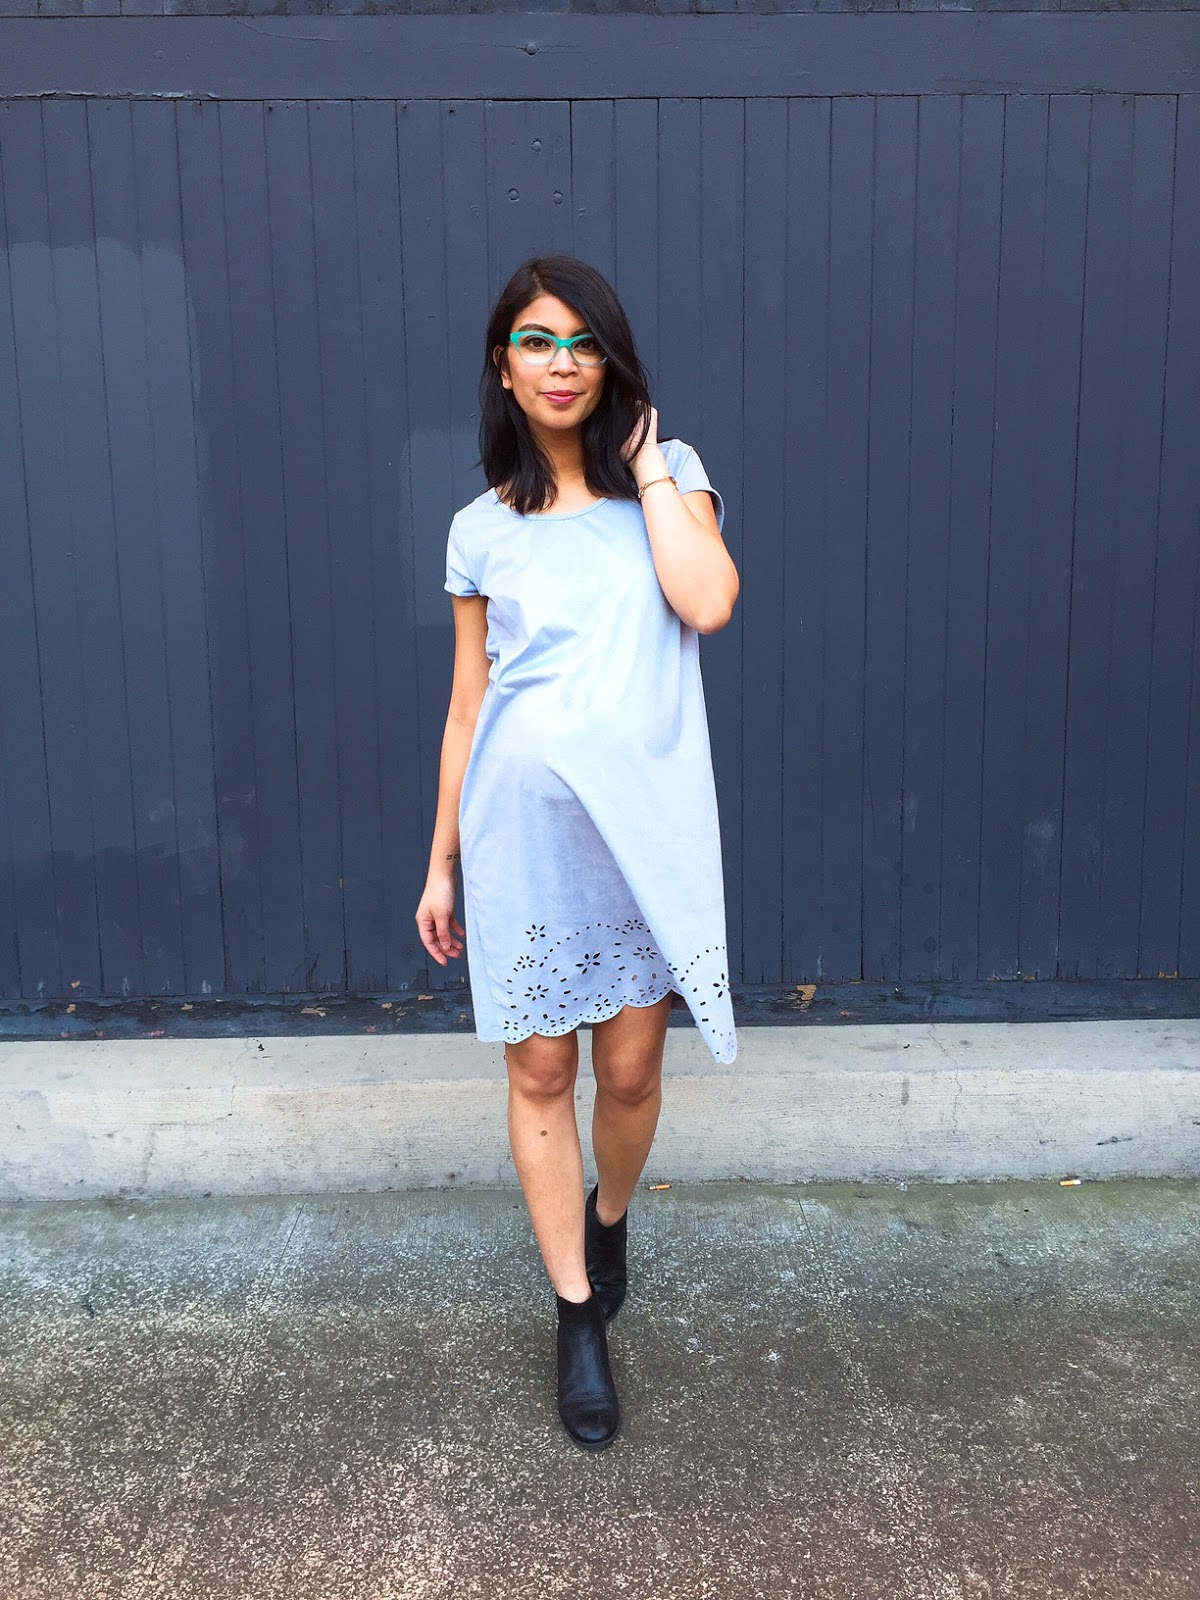 portland fashion blogger, the ptown girls, fblogger, pregnancy style, spectacle pdx, summer lookbook, blue suede dress, black booties, blue framed glasses